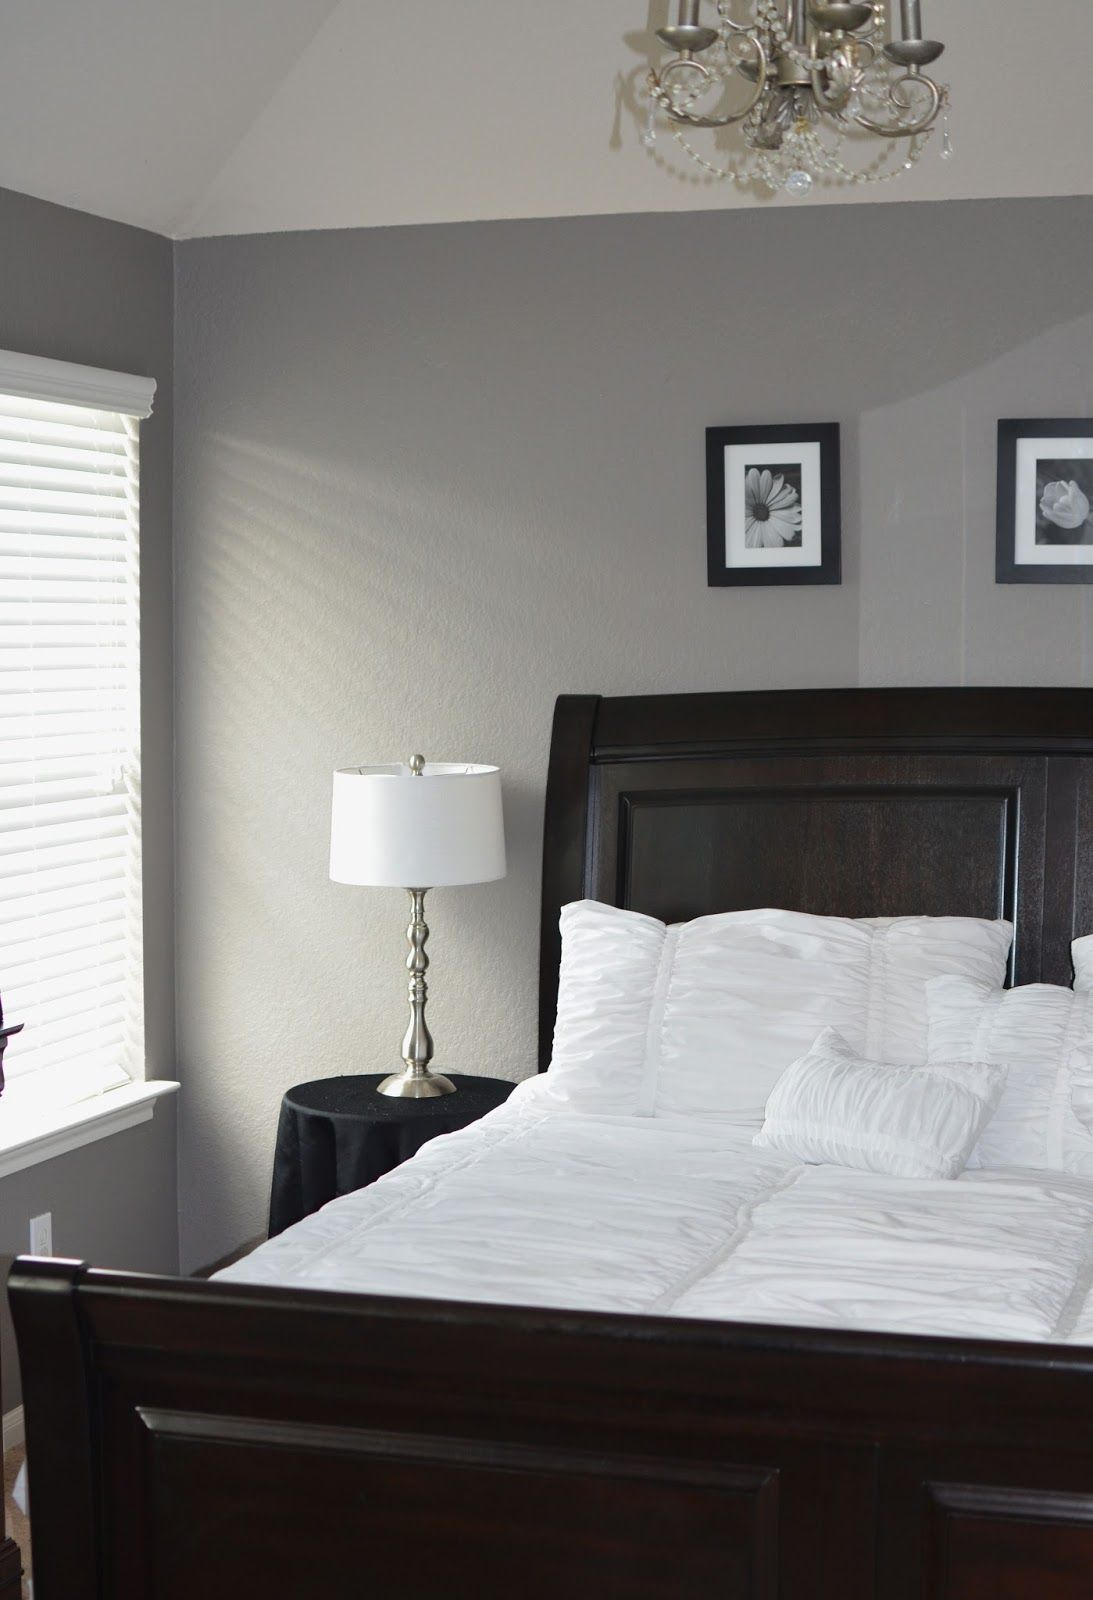 This Modern Master Bedroom From April Of Our Little Loves regarding 14 Smart Ideas How to Craft Modern Master Bedroom Paint Colors